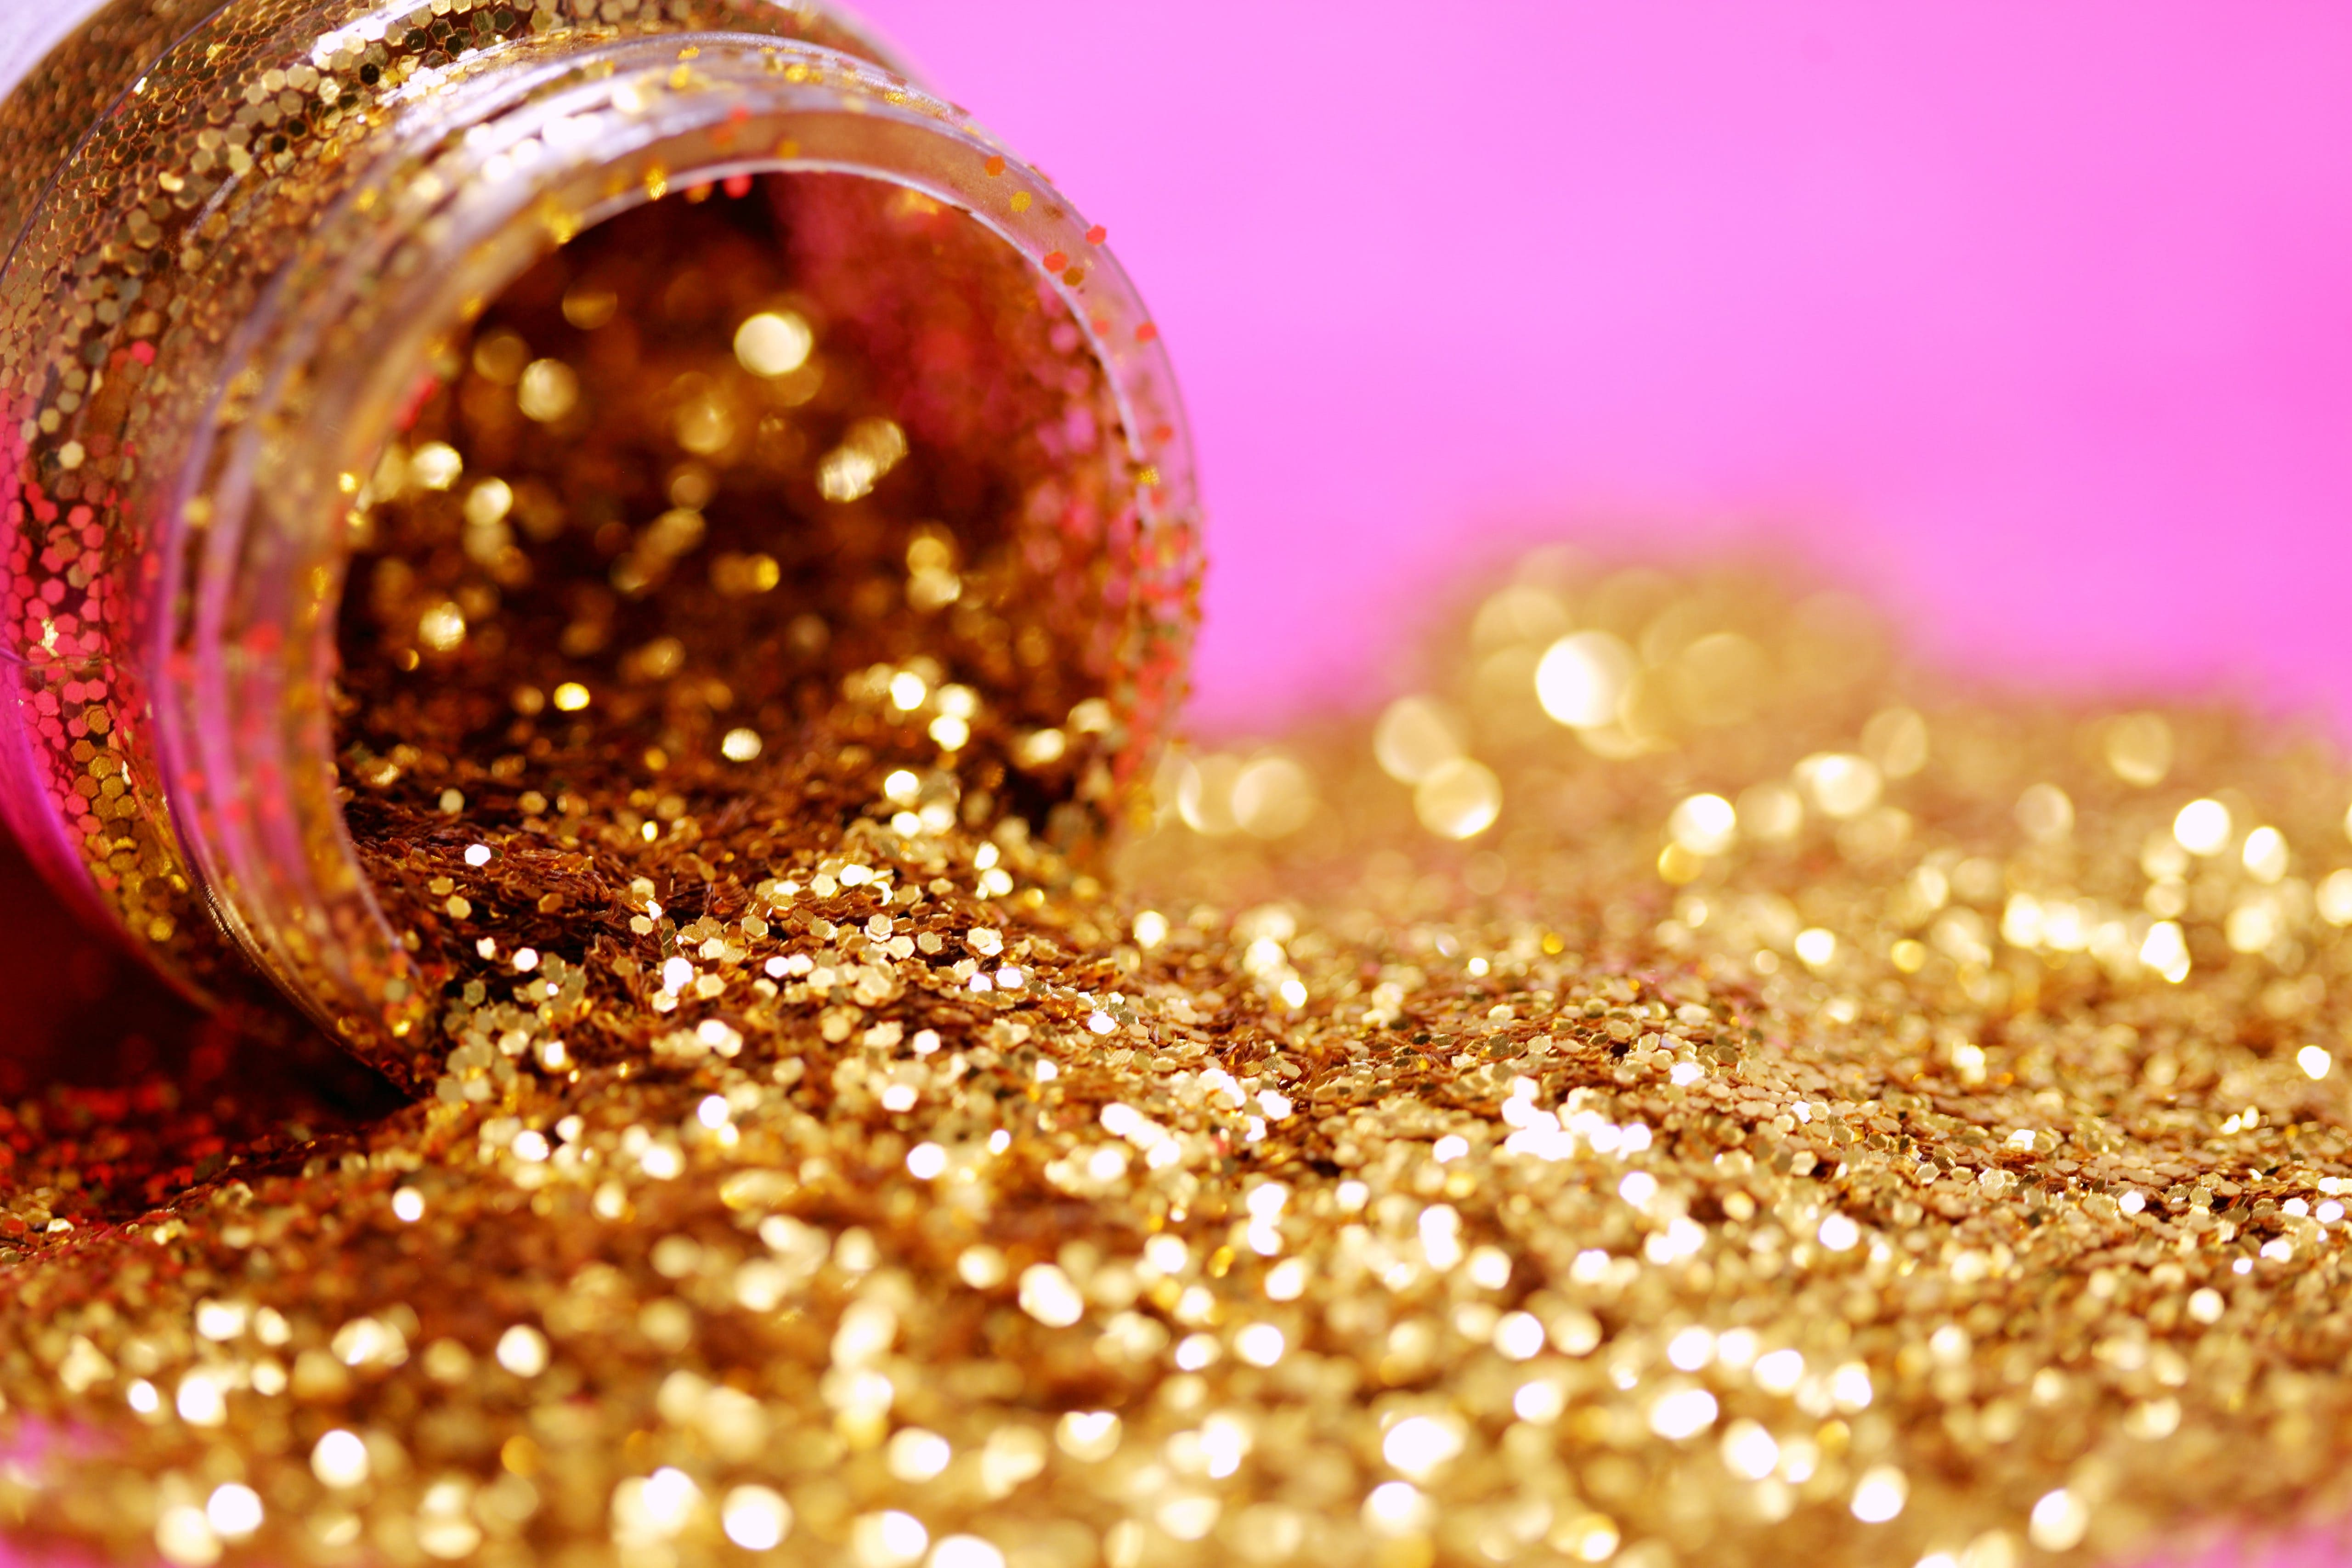 gold glitter spilling out of tub onto pink background